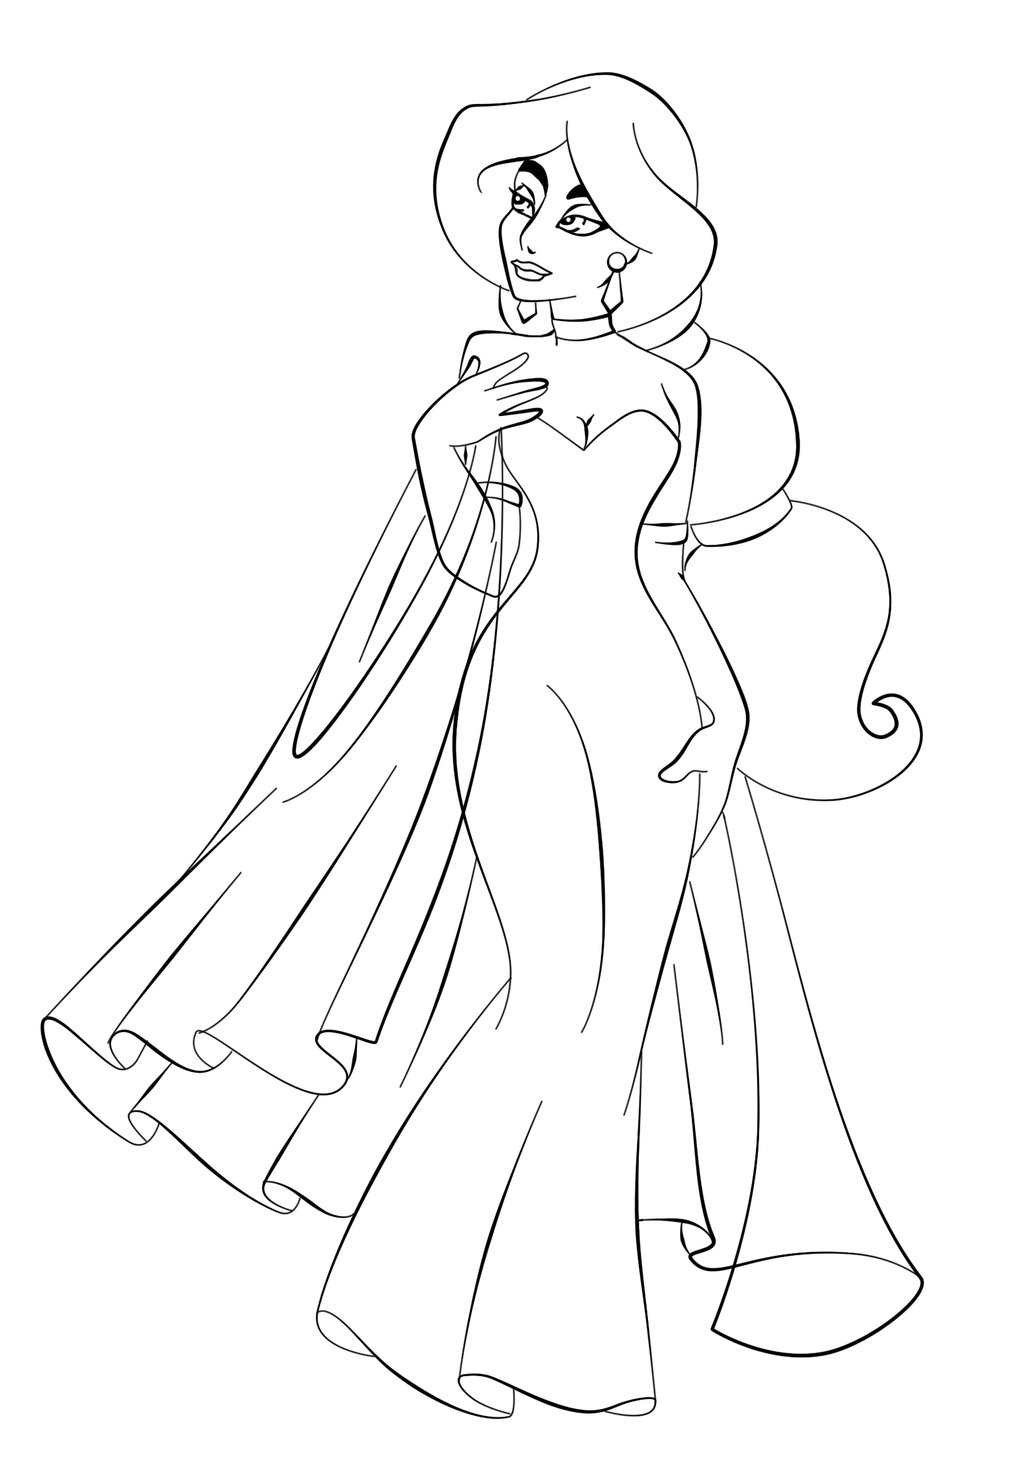 printable jasmine coloring pages me - Printable Coloring Pages Princess